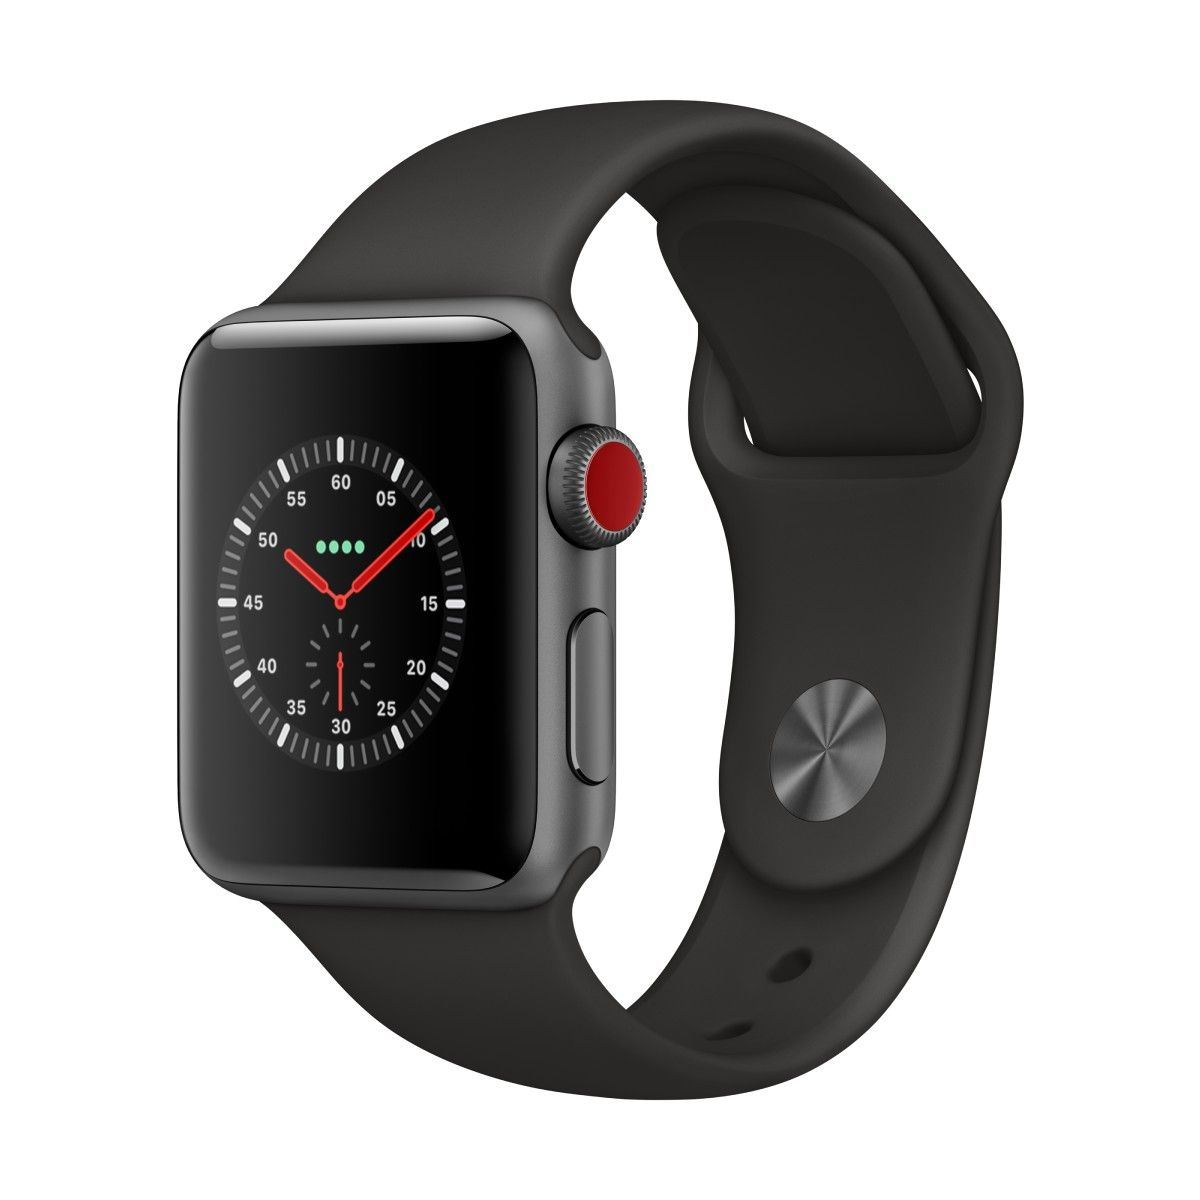 buy Watch Series 3 online in india best prices